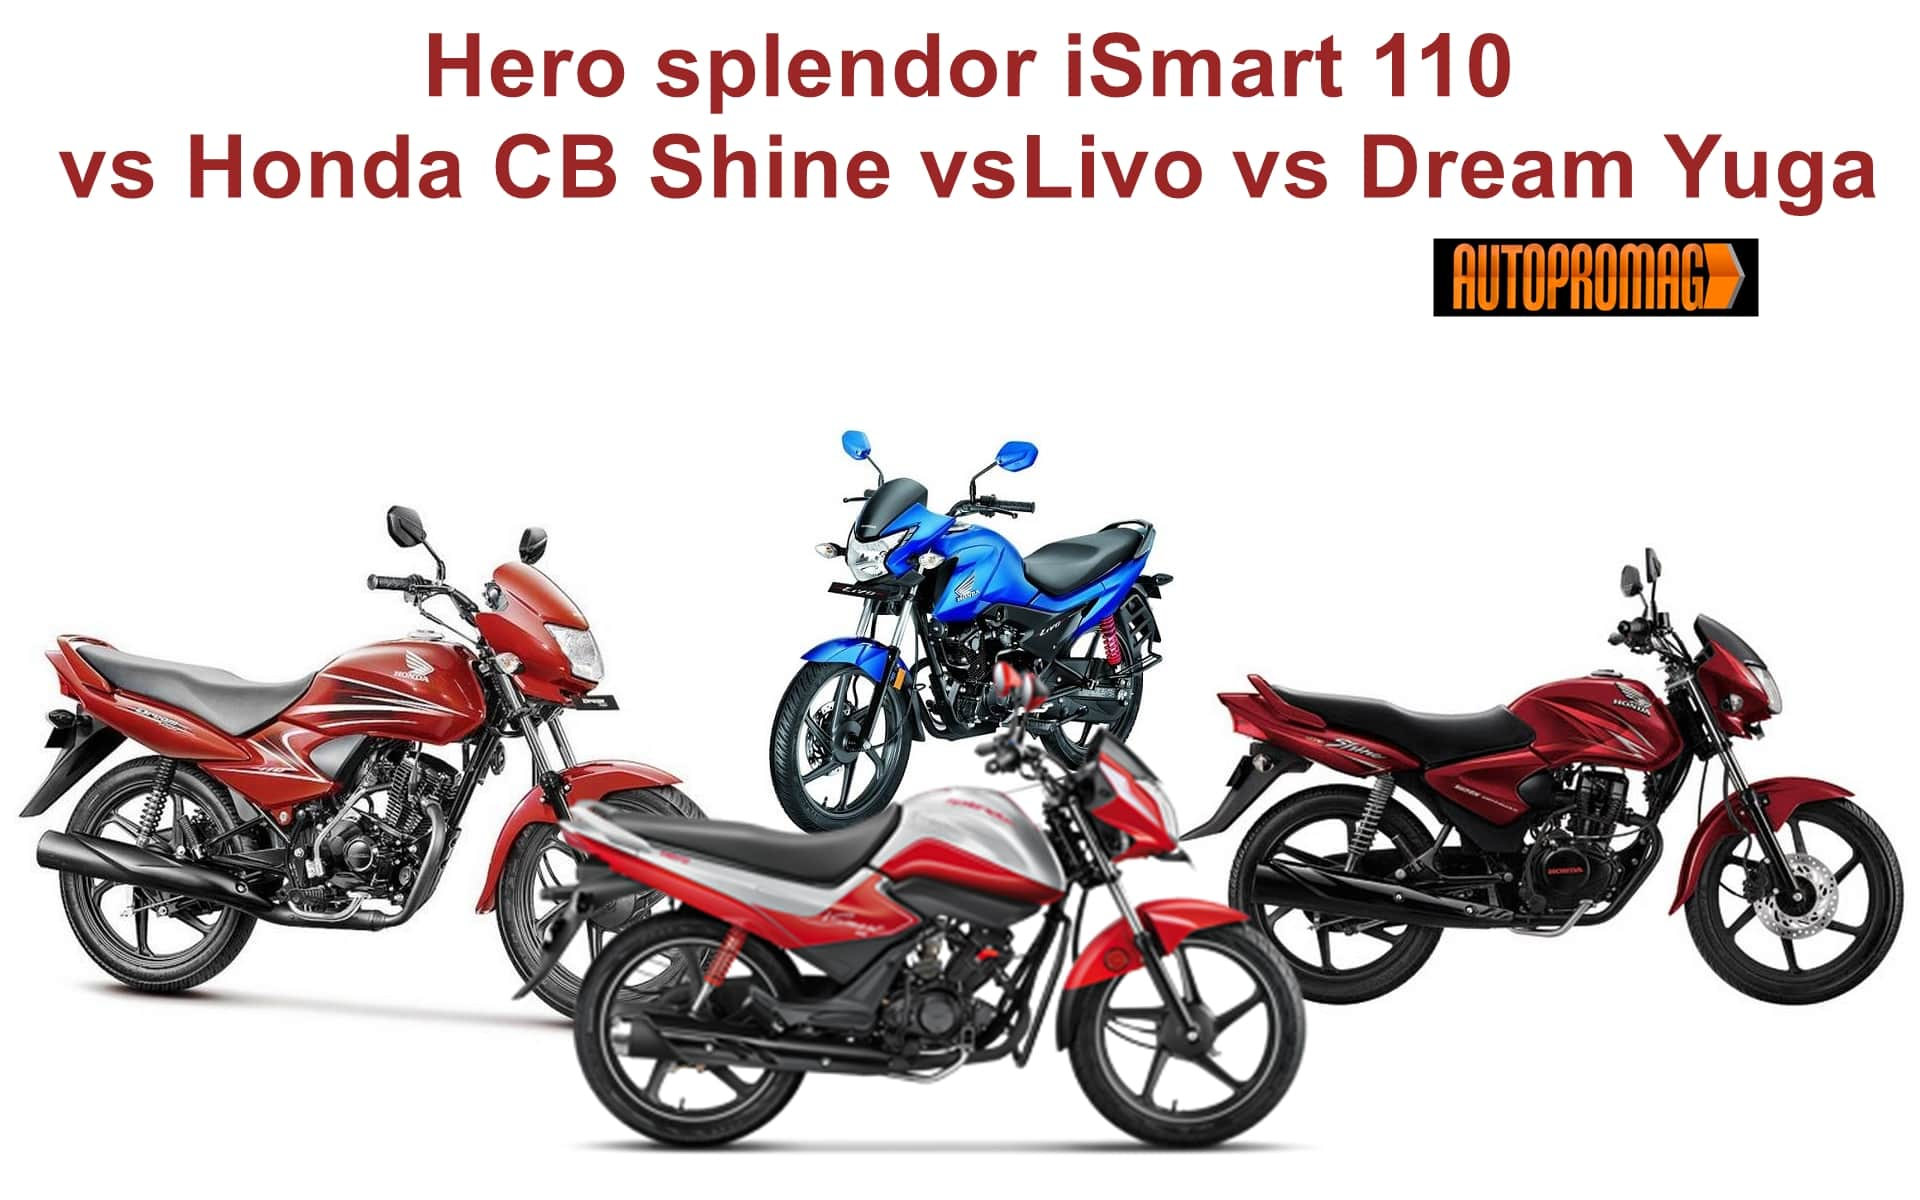 Hero Splendor Ismart 110 Vs Honda Cb Shine Vs Livo Vs Dream Yuga